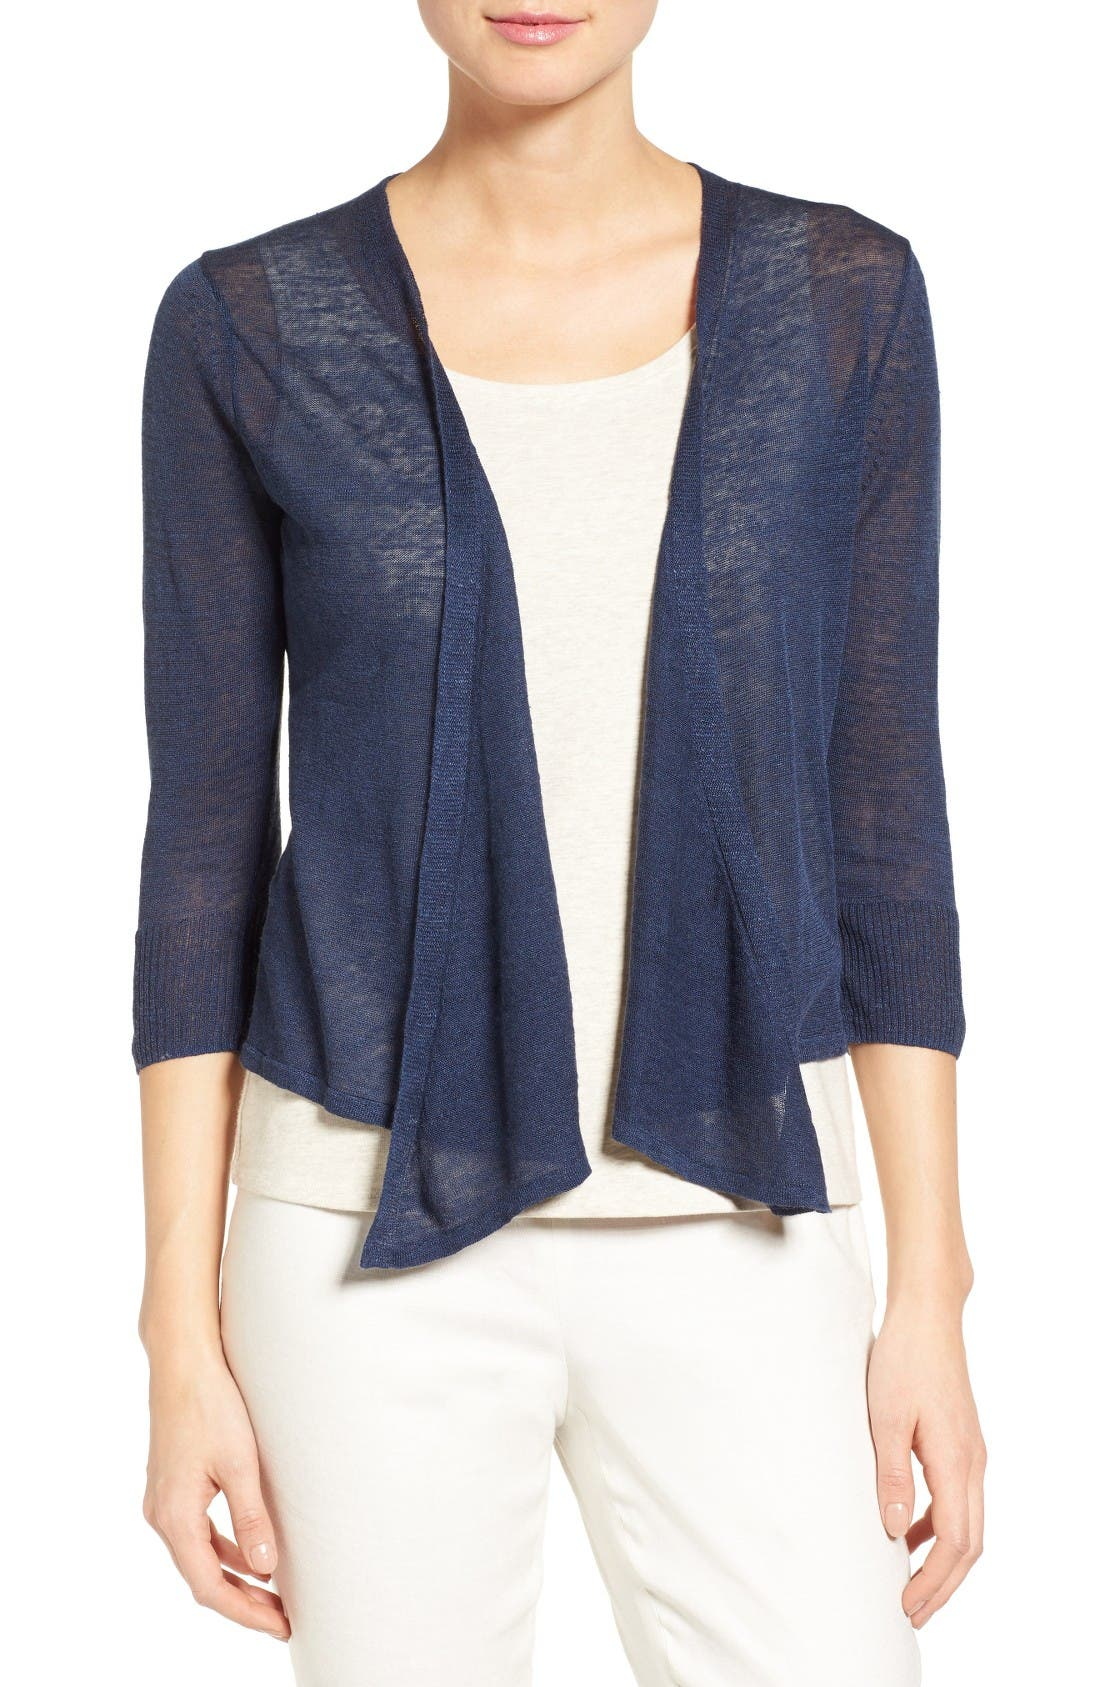 4-Way Convertible Three Quarter Sleeve Cardigan,                         Main,                         color, Indigo